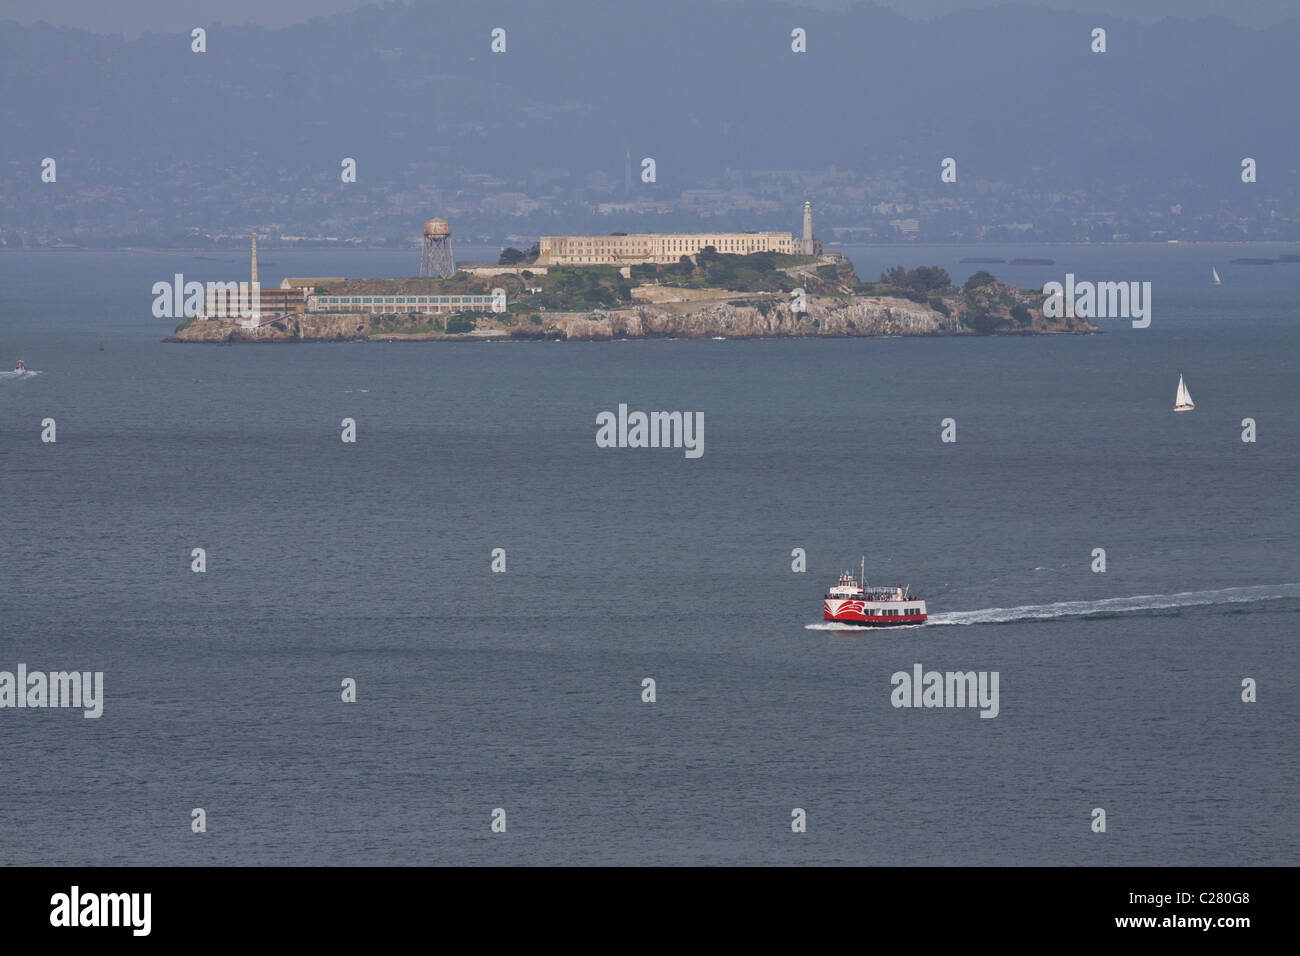 View of Alcatraz Island with ferry passing by, San Francisco Bay, California, USA - Stock Image